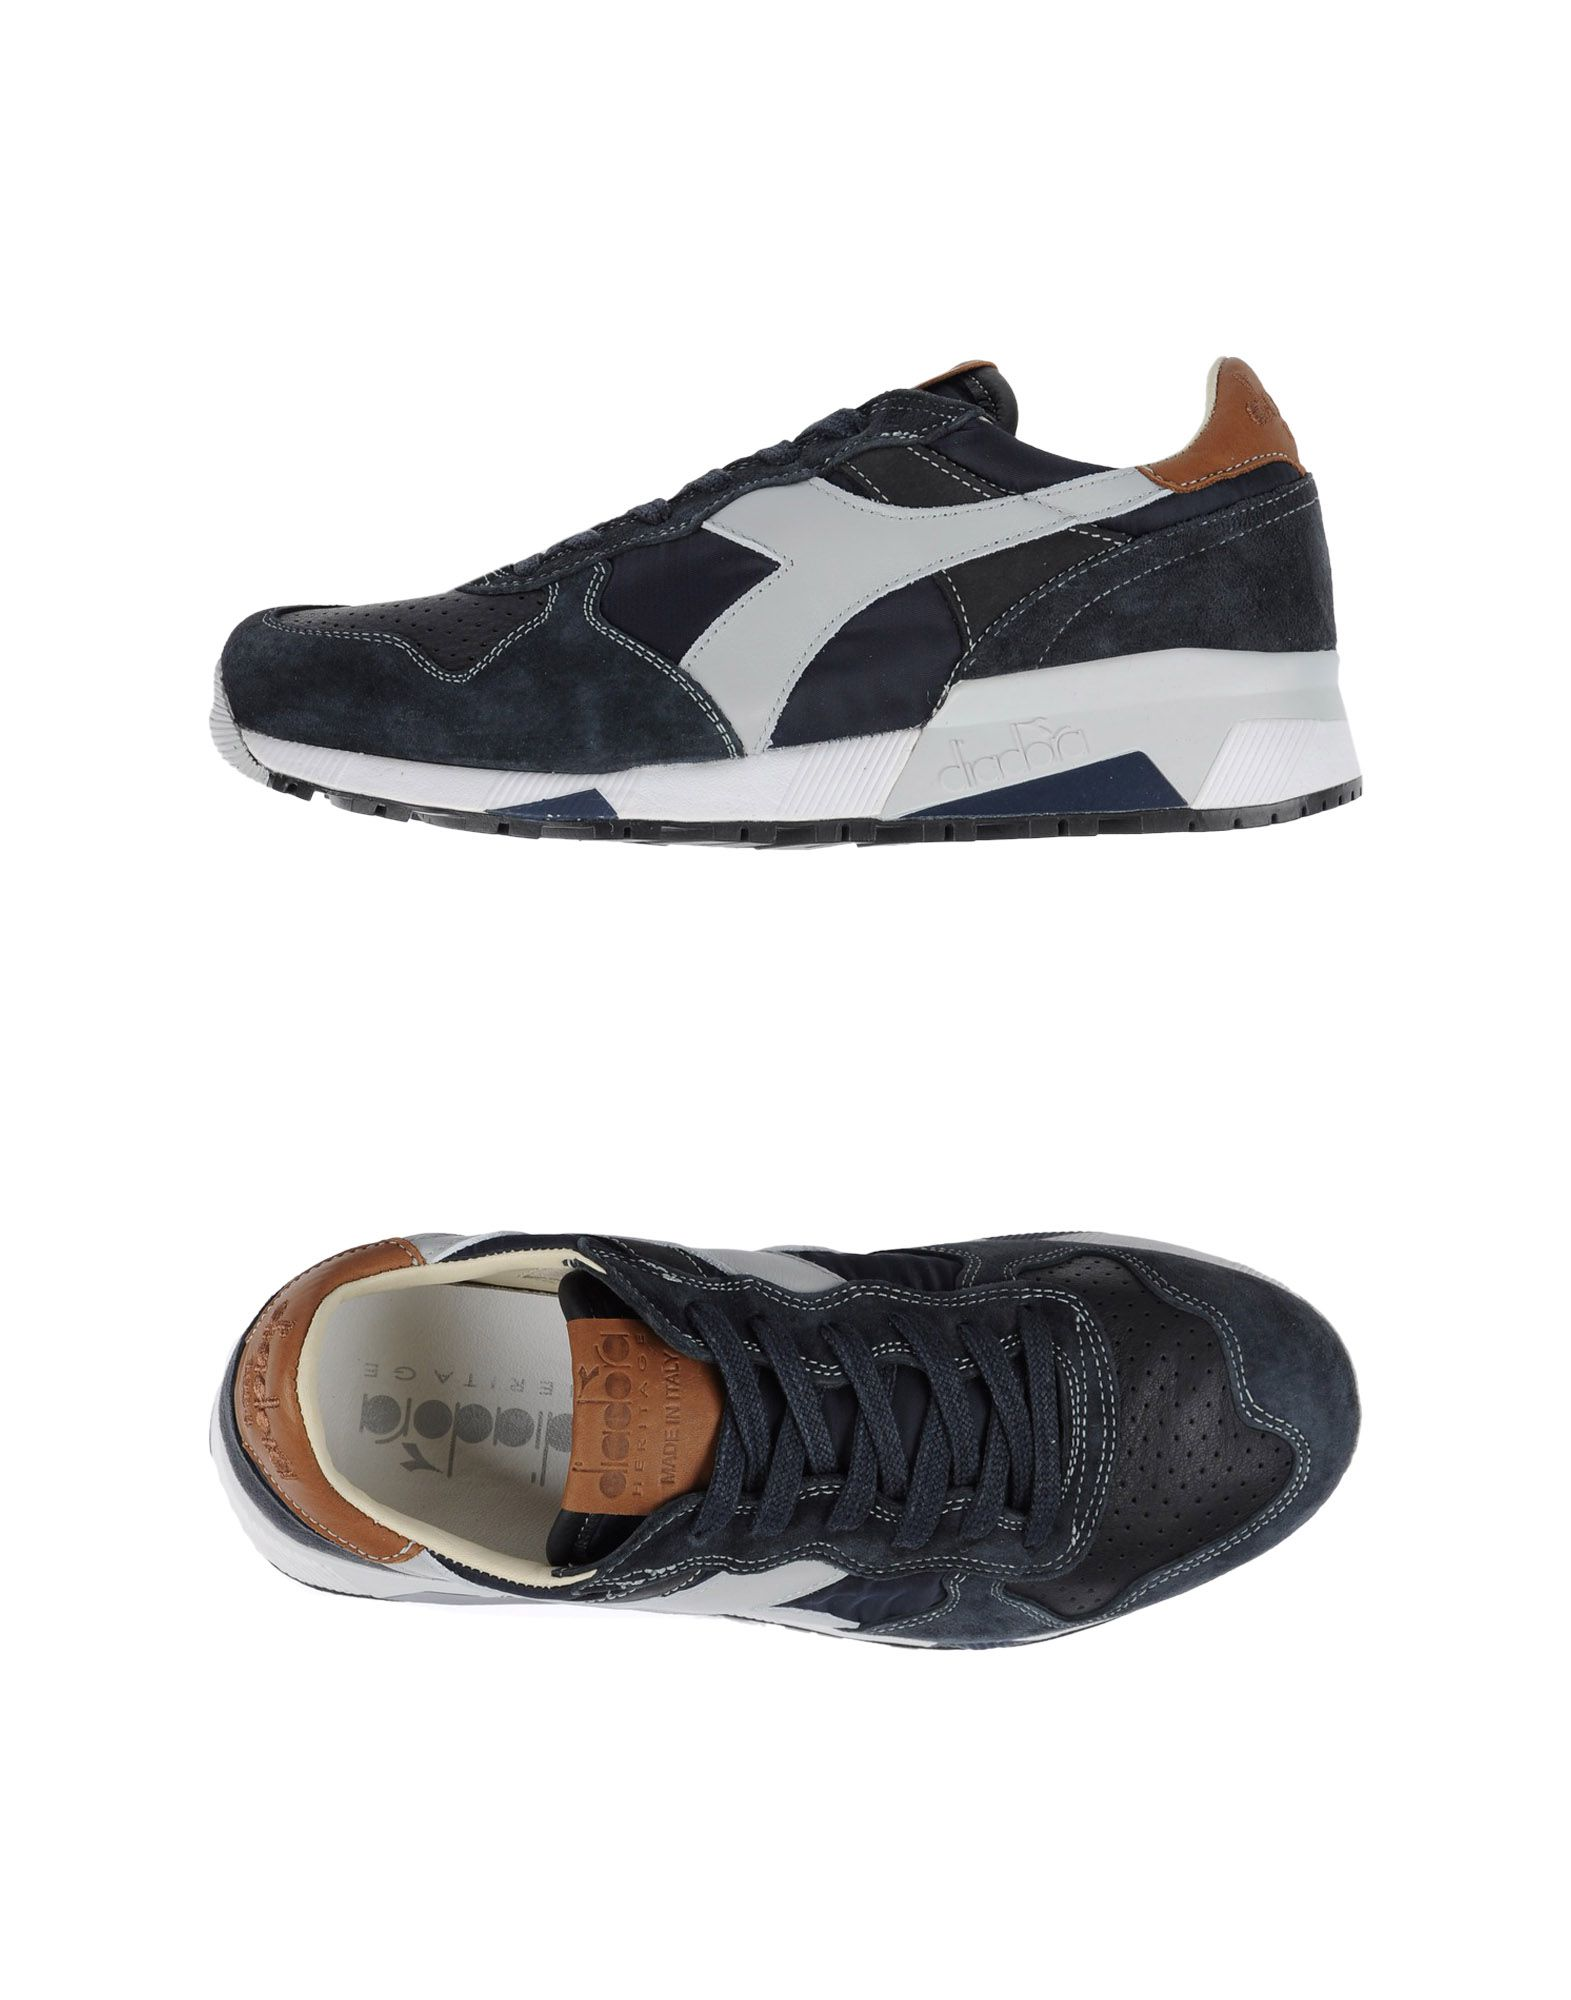 Baskets Diadora Heritage Trident 90 Nyl - Homme - Baskets Diadora Heritage  Bleu foncé Chaussures casual sauvages